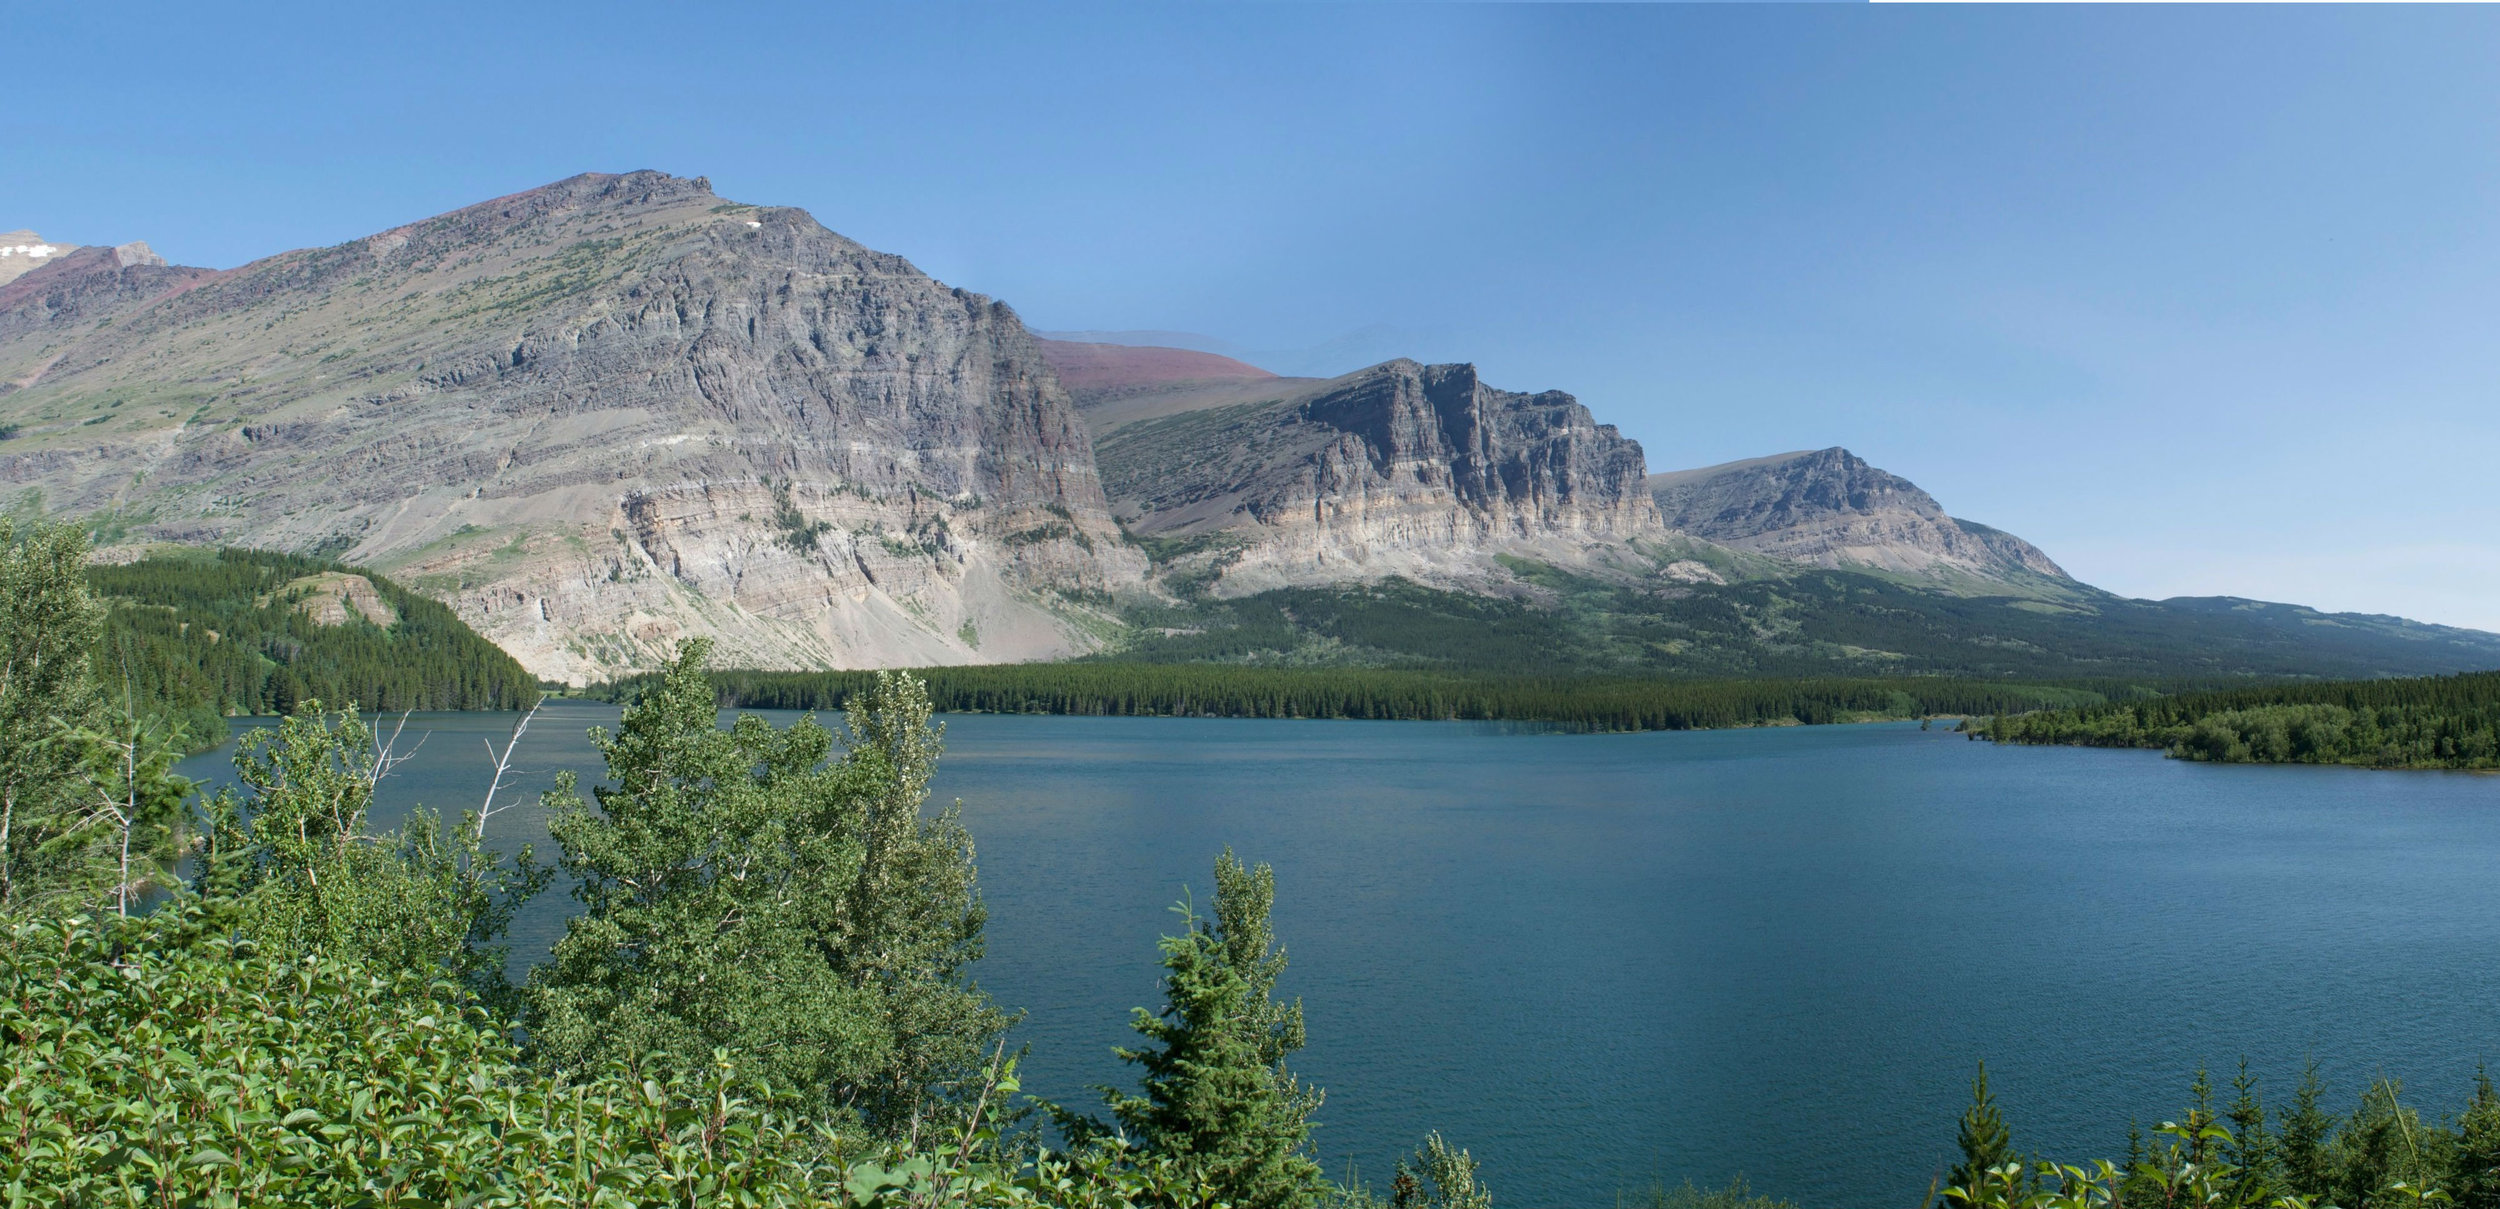 You start the hike off by hiking around the west end of Lake Sherburne